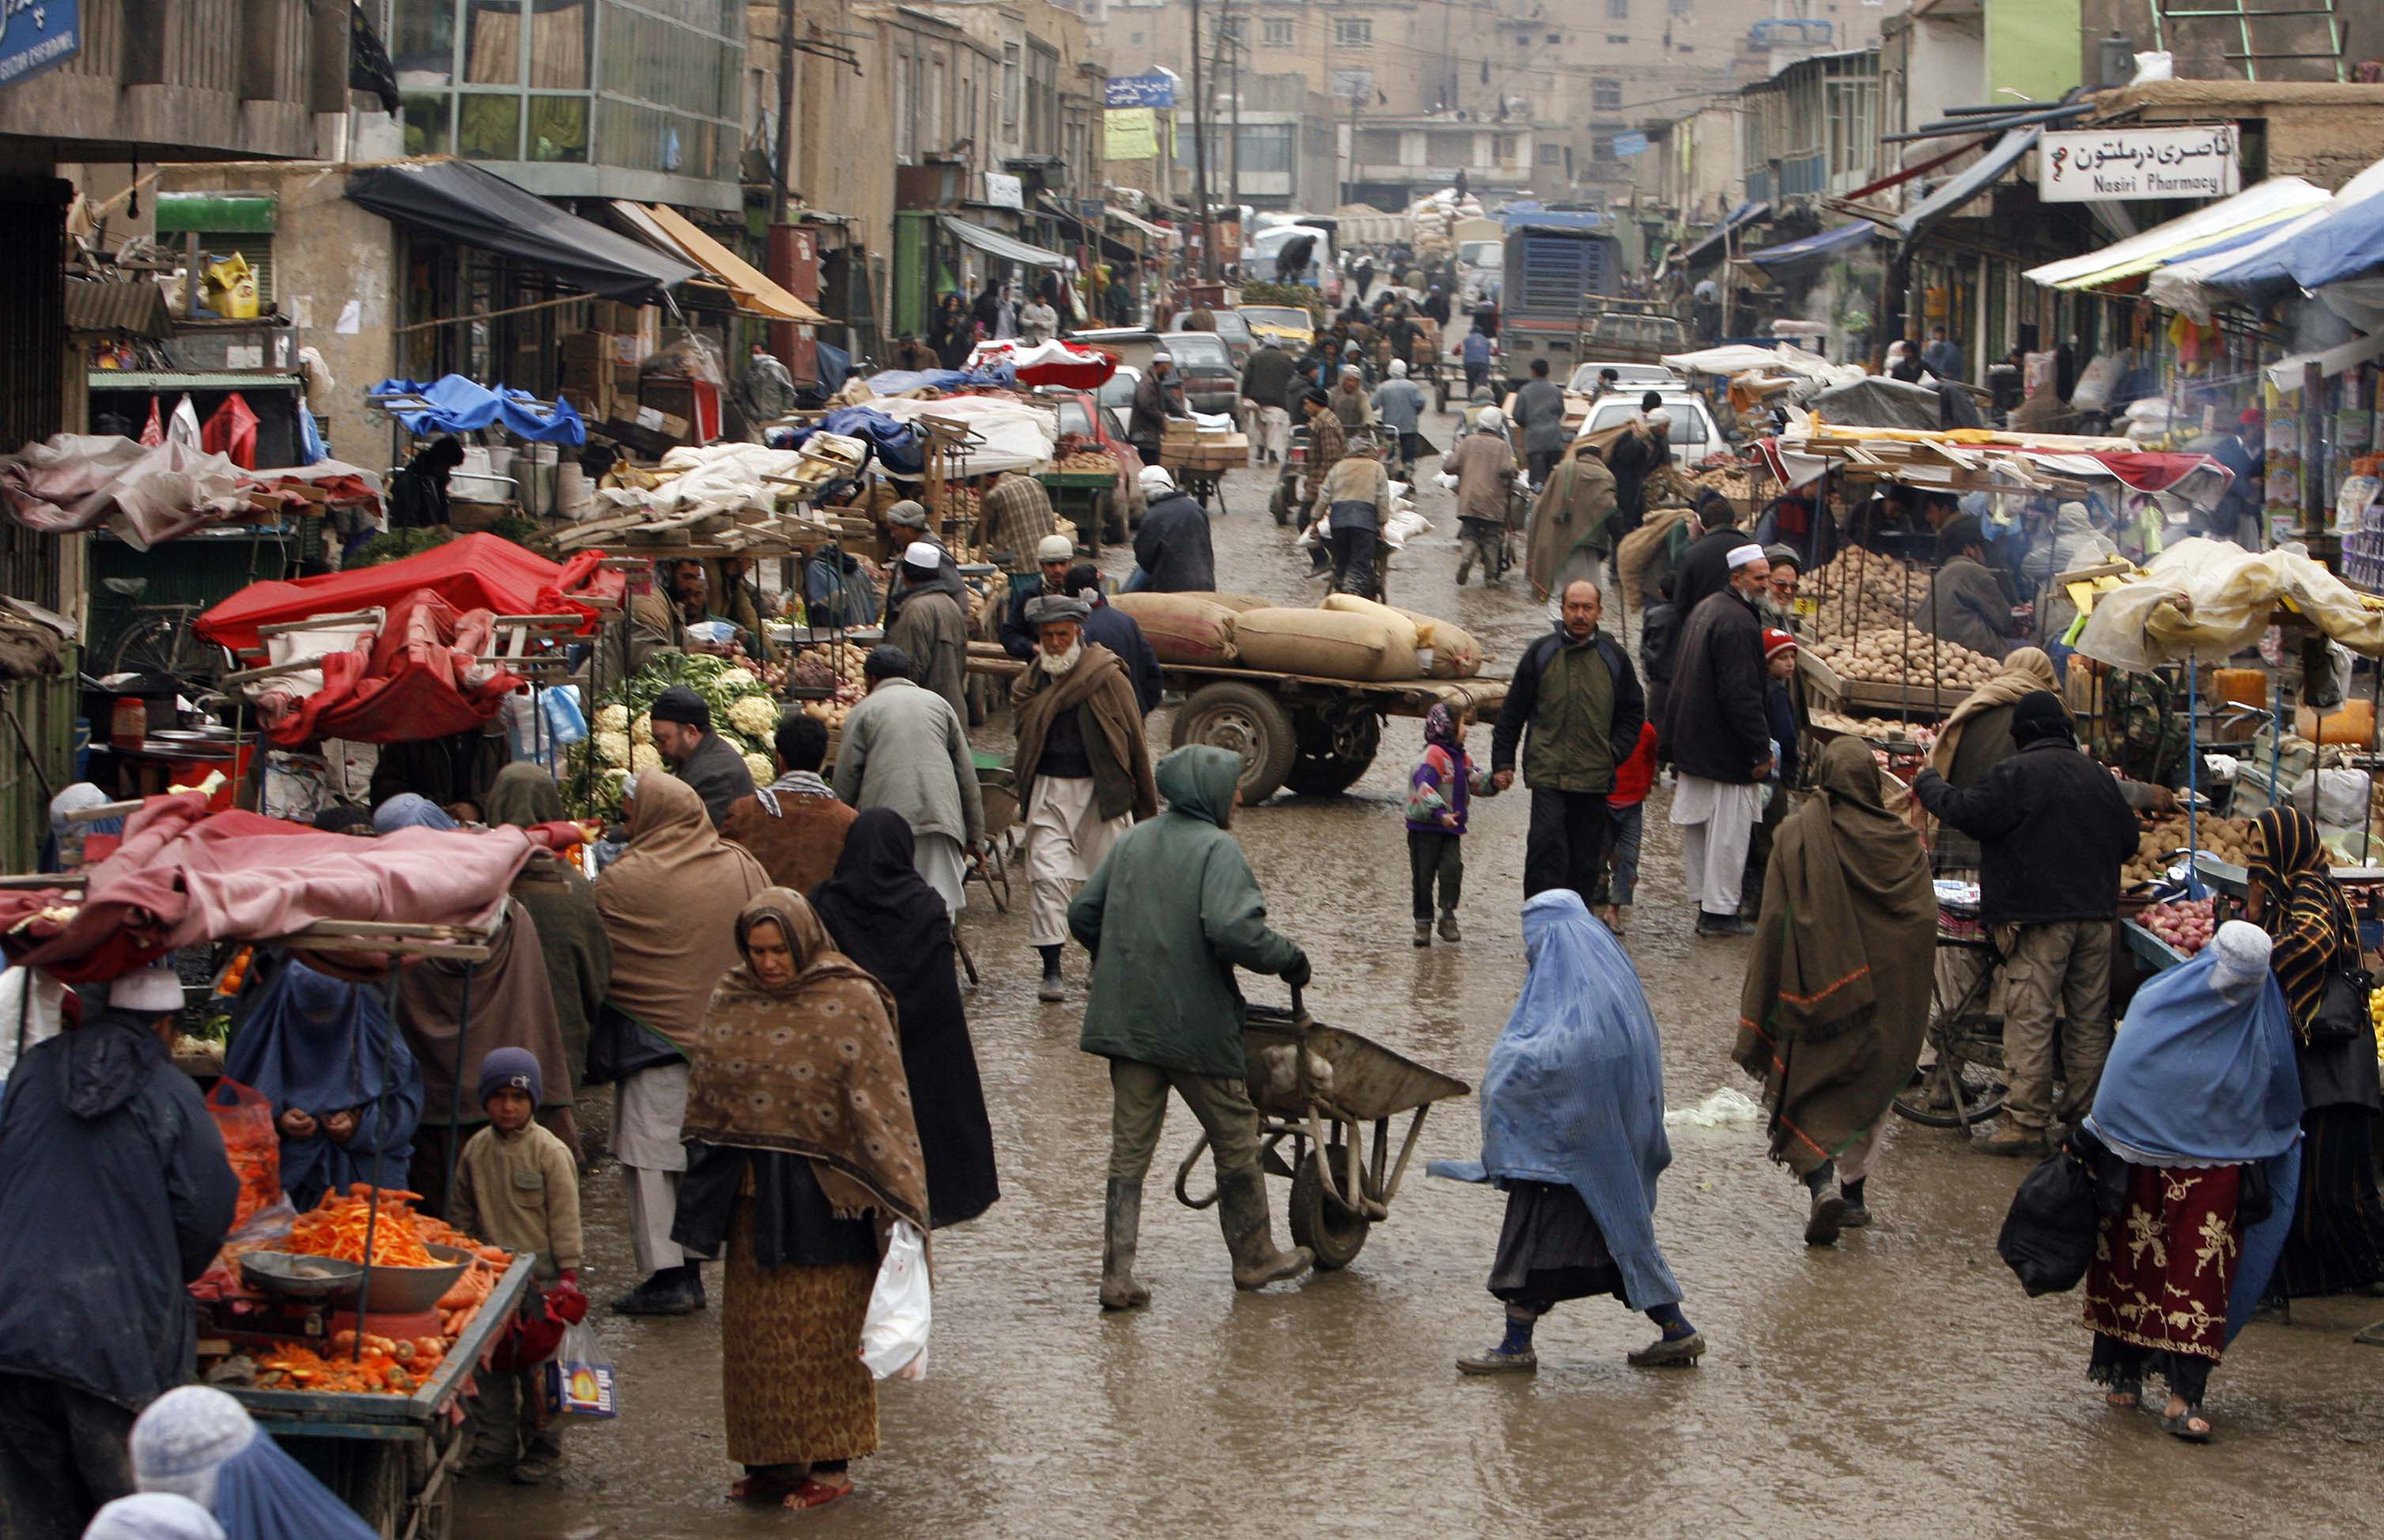 A busy, busy rainy day bustling with people in a crowded street market